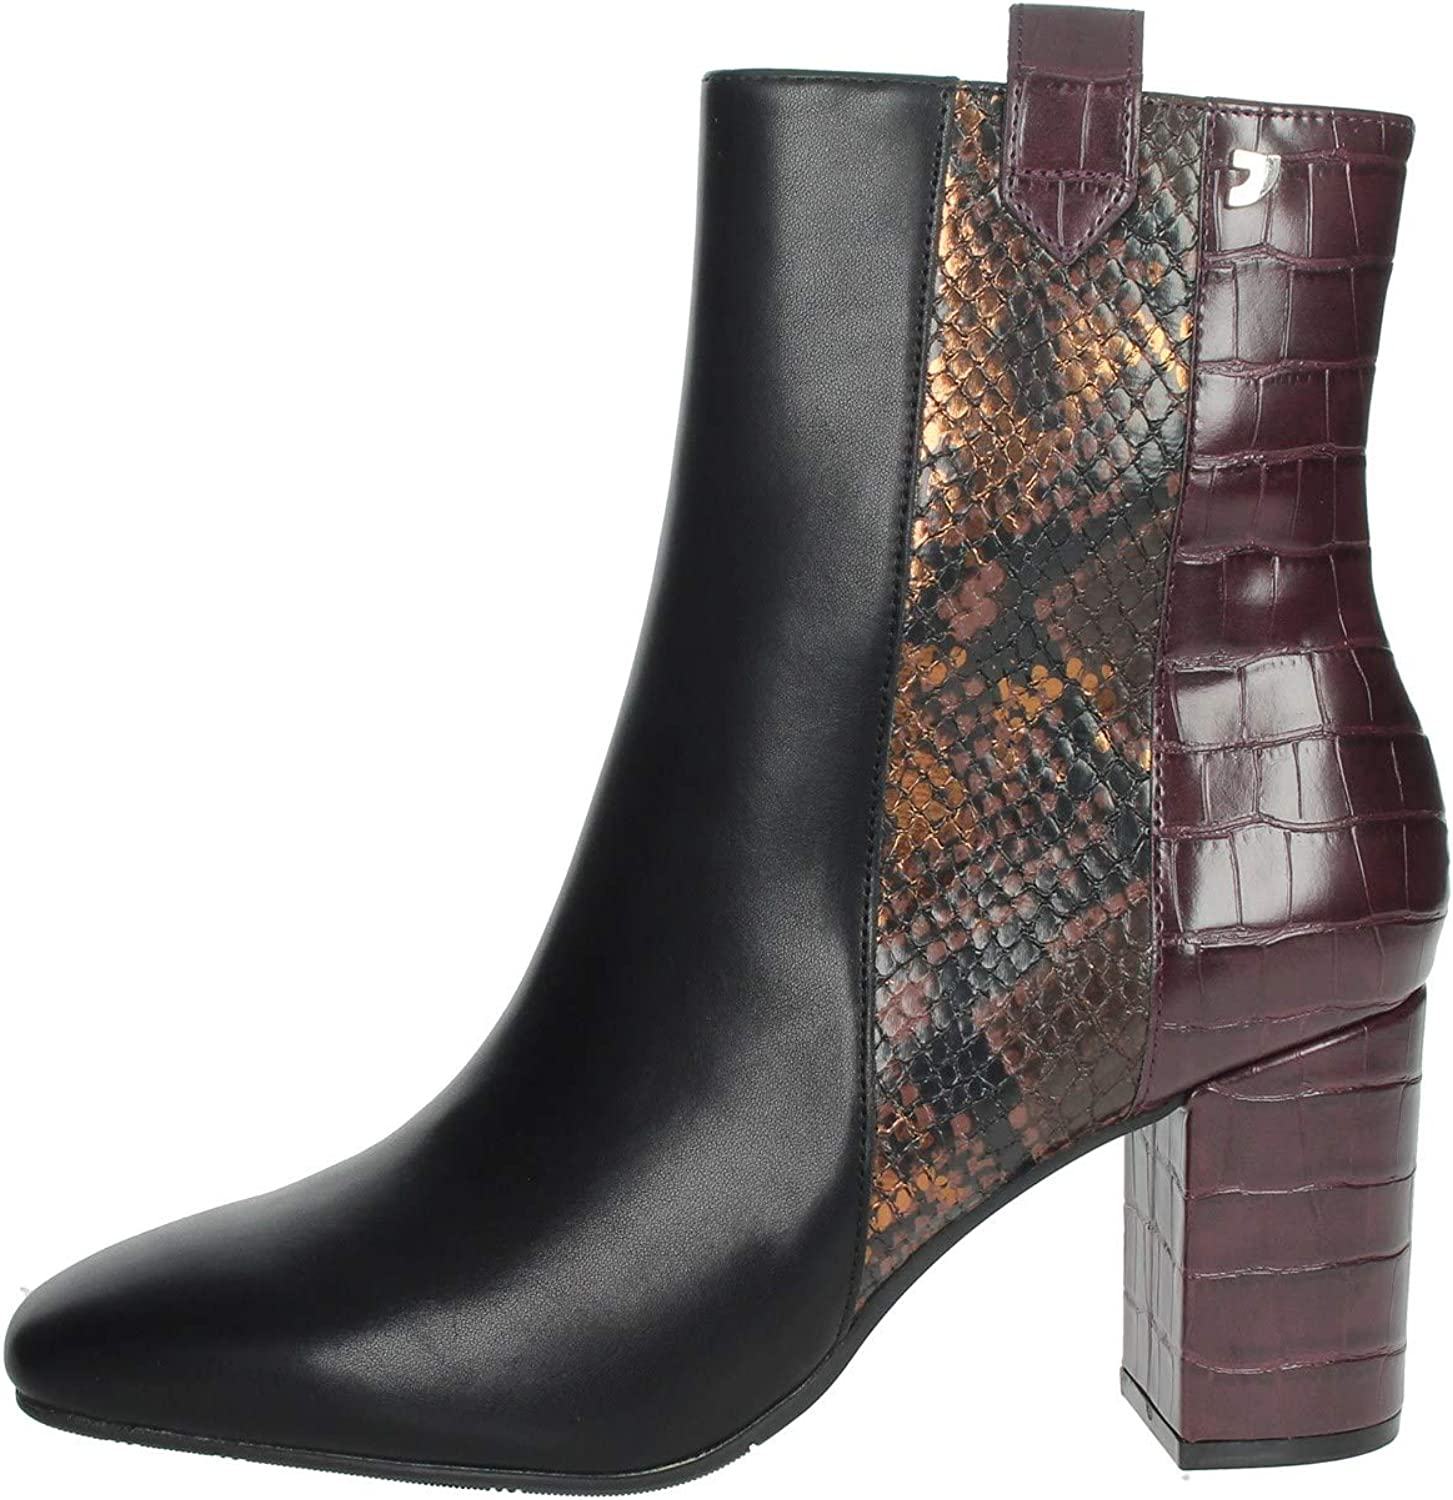 Sales GIOSEPPO Women's Classic Max 71% OFF Boot Ankle